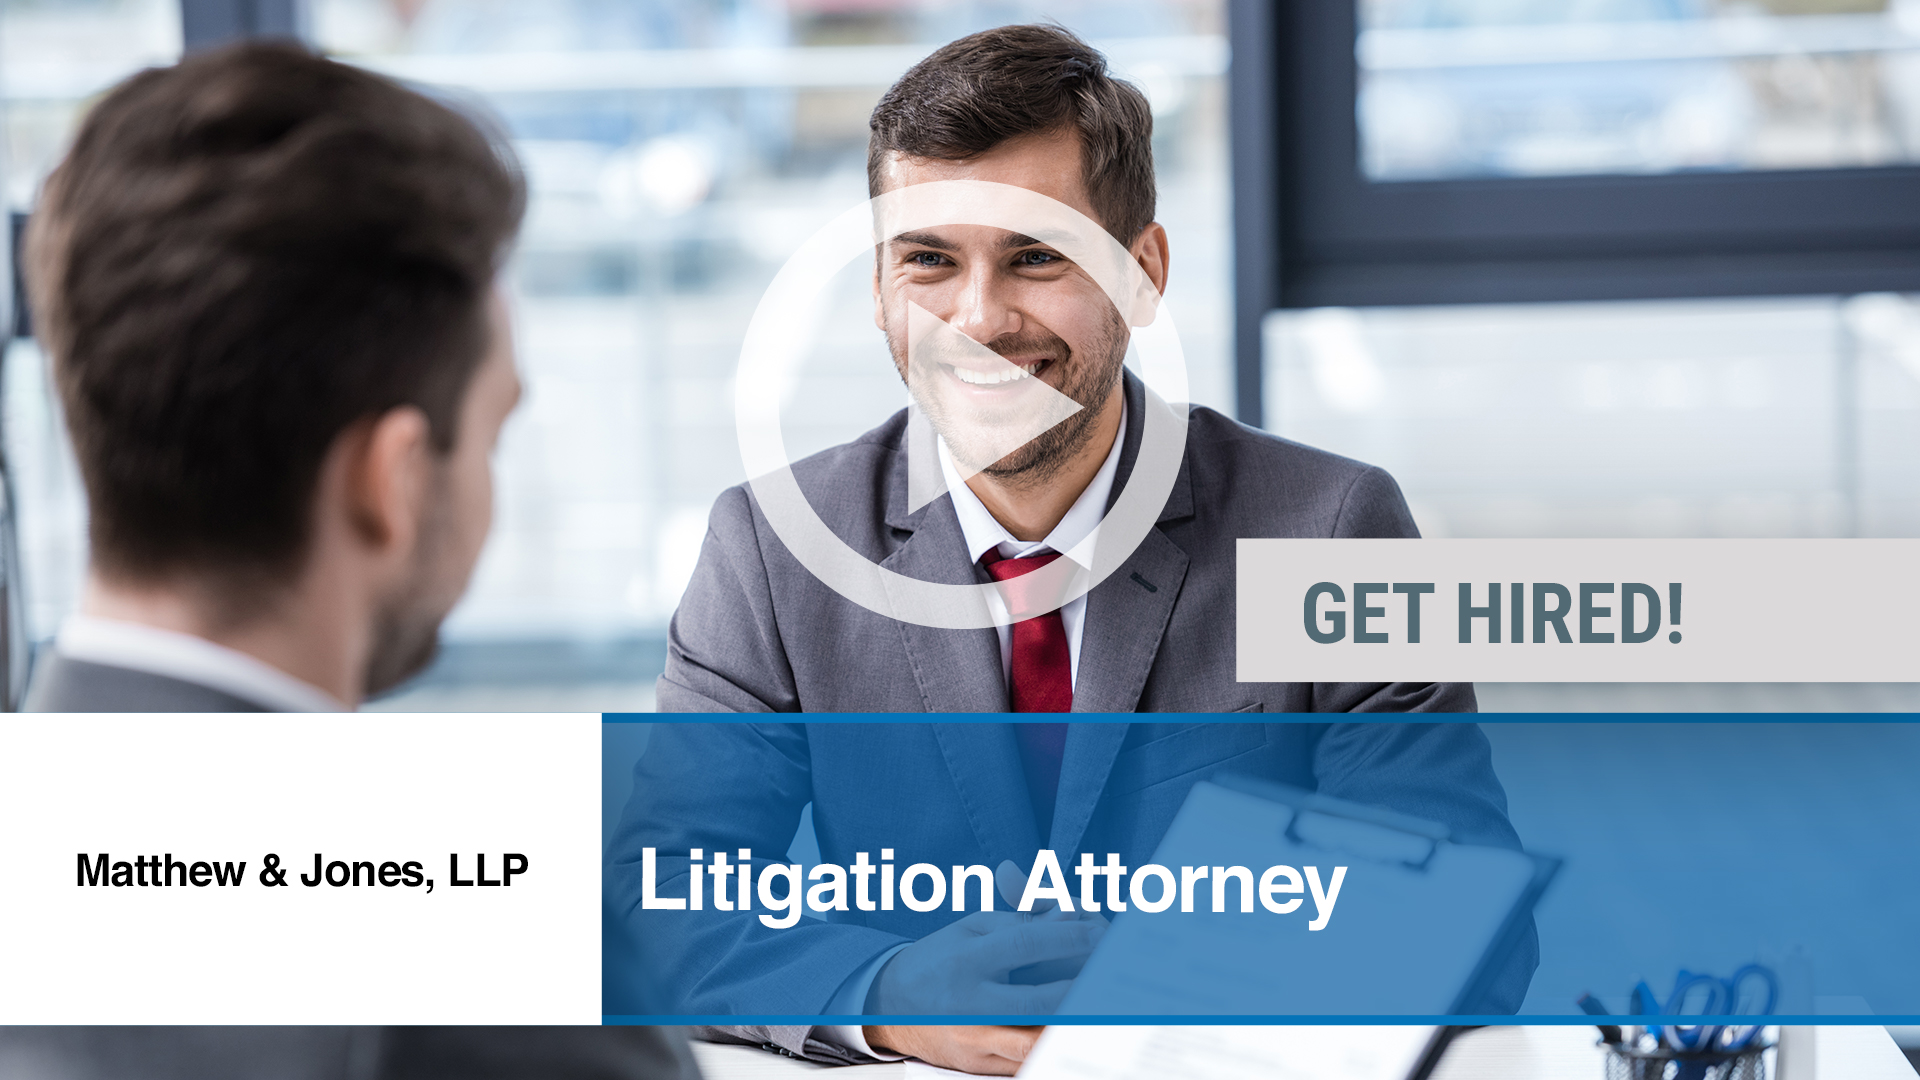 Watch our careers video for available job opening Litigation Attorney in Destin, FL